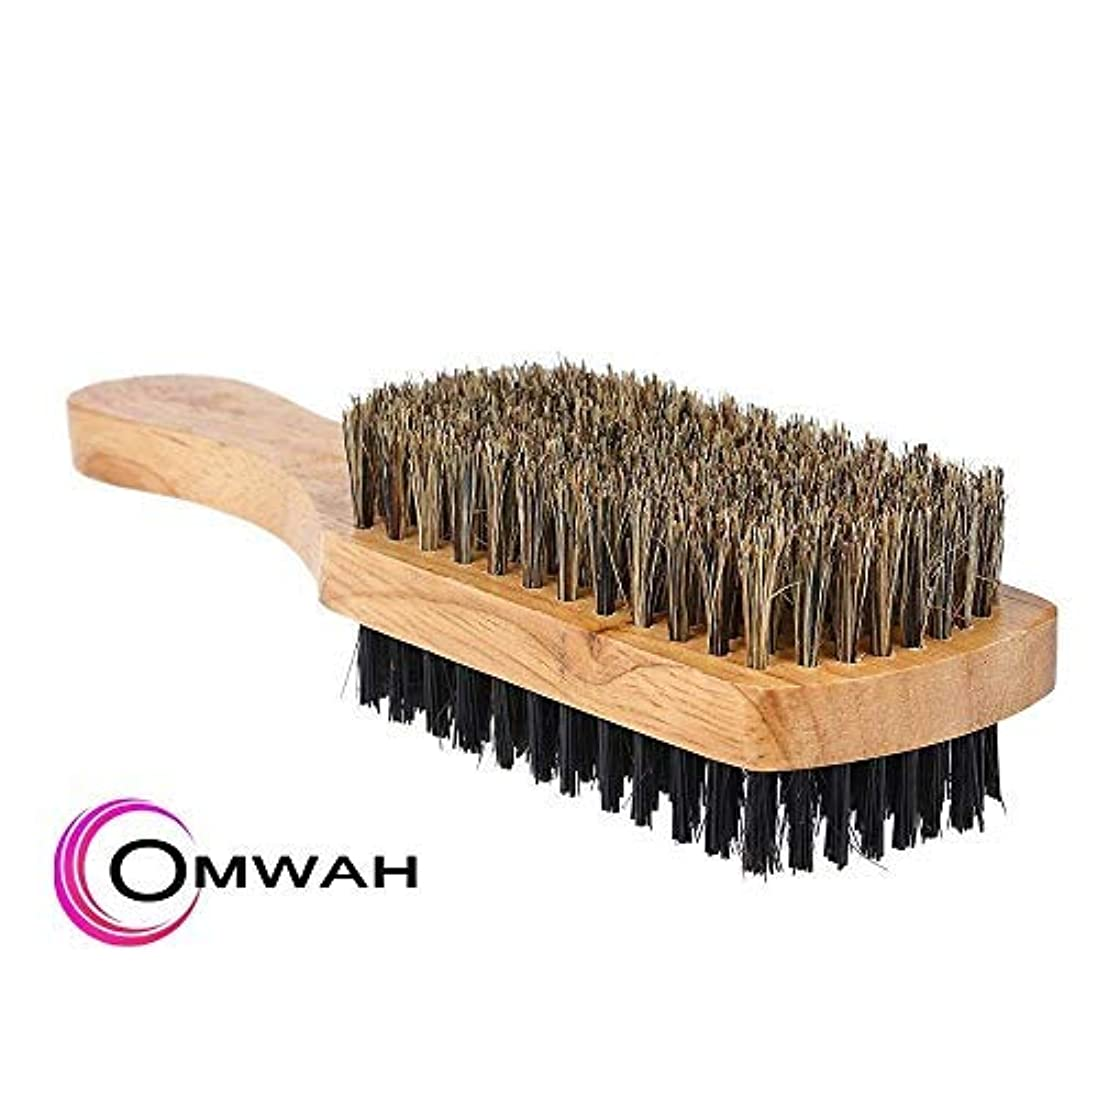 分類毒麻酔薬Omwah Double Sided 2 Sided Facial Hairbrush Styling Beard Brush Mens Boar Bristle [並行輸入品]